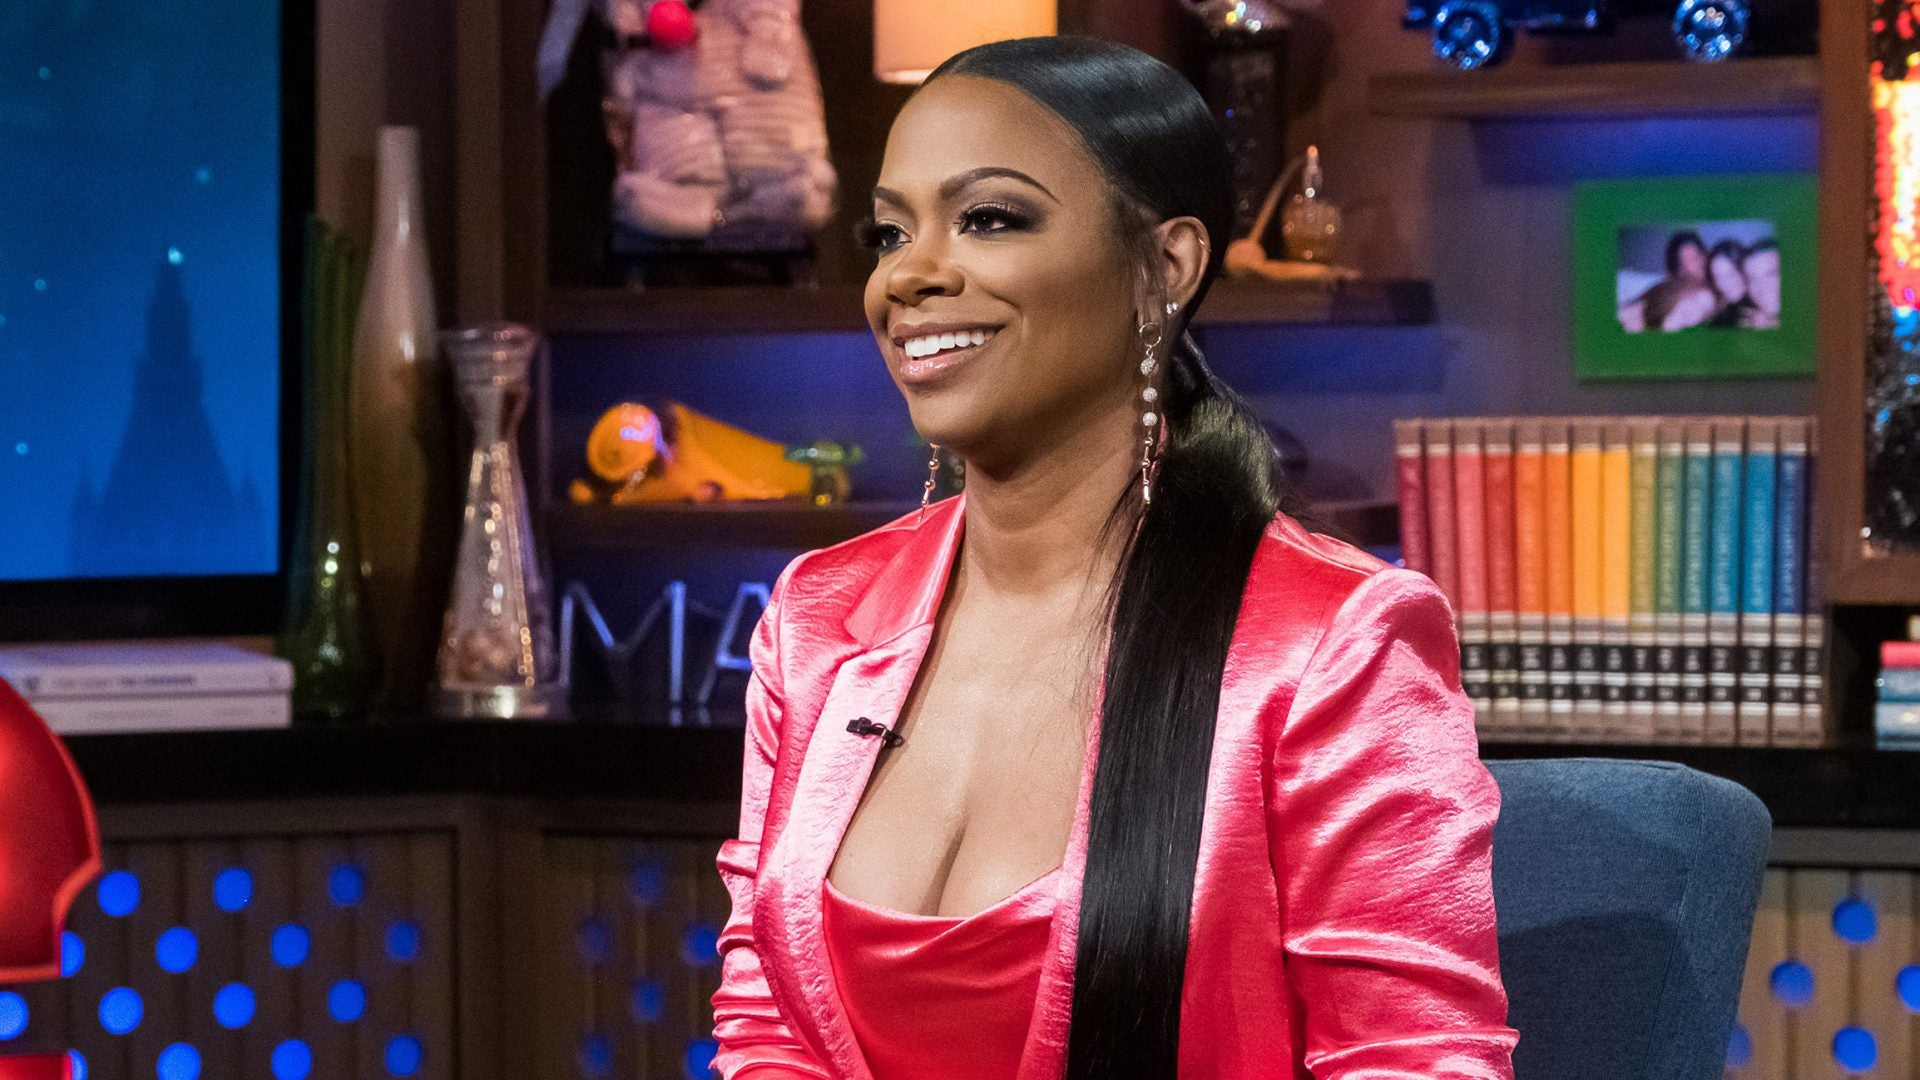 kandi-burruss-is-posing-with-her-two-favorite-guys